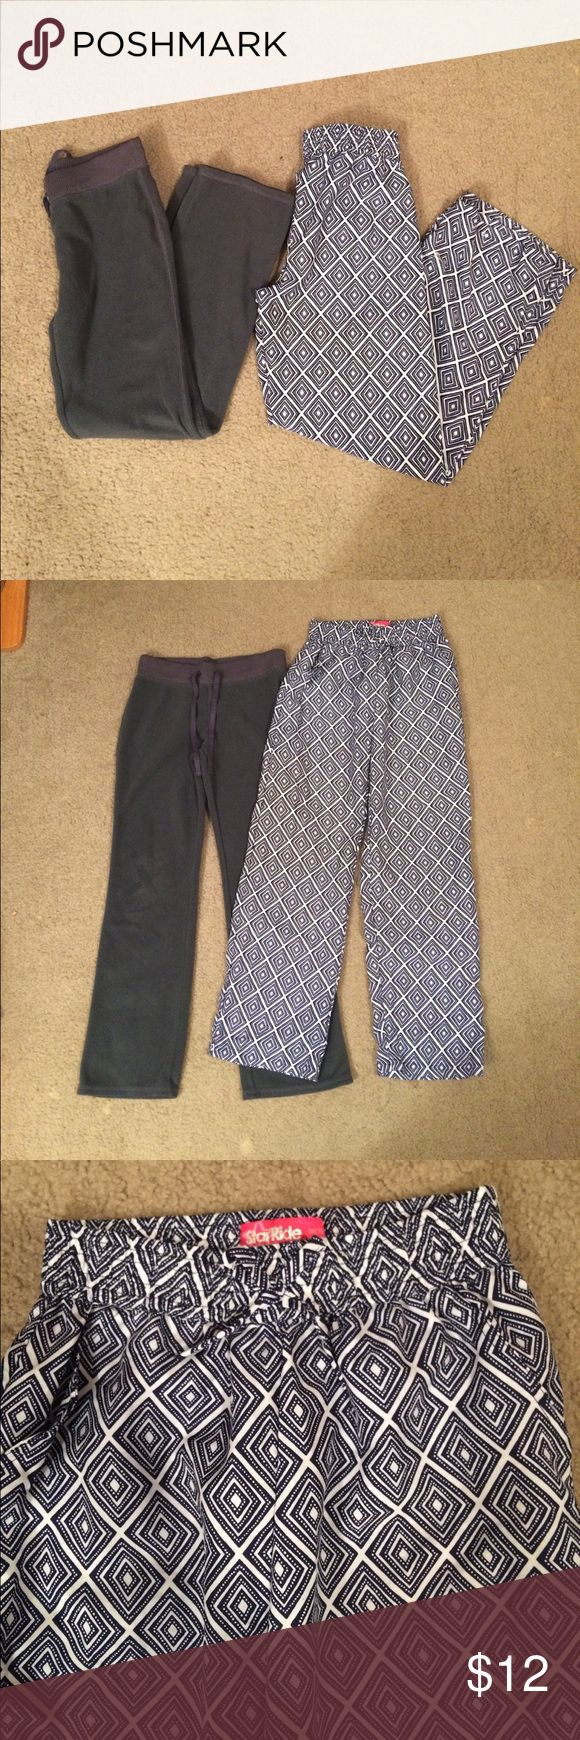 """$9 girls size medium 10–12 pants lot Both in excellent condition! Blue and white chevron pants are light and flowy perfect for summer.✔The price in the beginning of the title of my listings is the bundle price. These prices are valid through the """"make an offer"""" feature after you create a bundle. These bundle orders must be over $15. Ask me about more details if interested.  ❌No trades ❌No holds Old Navy Bottoms Casual"""